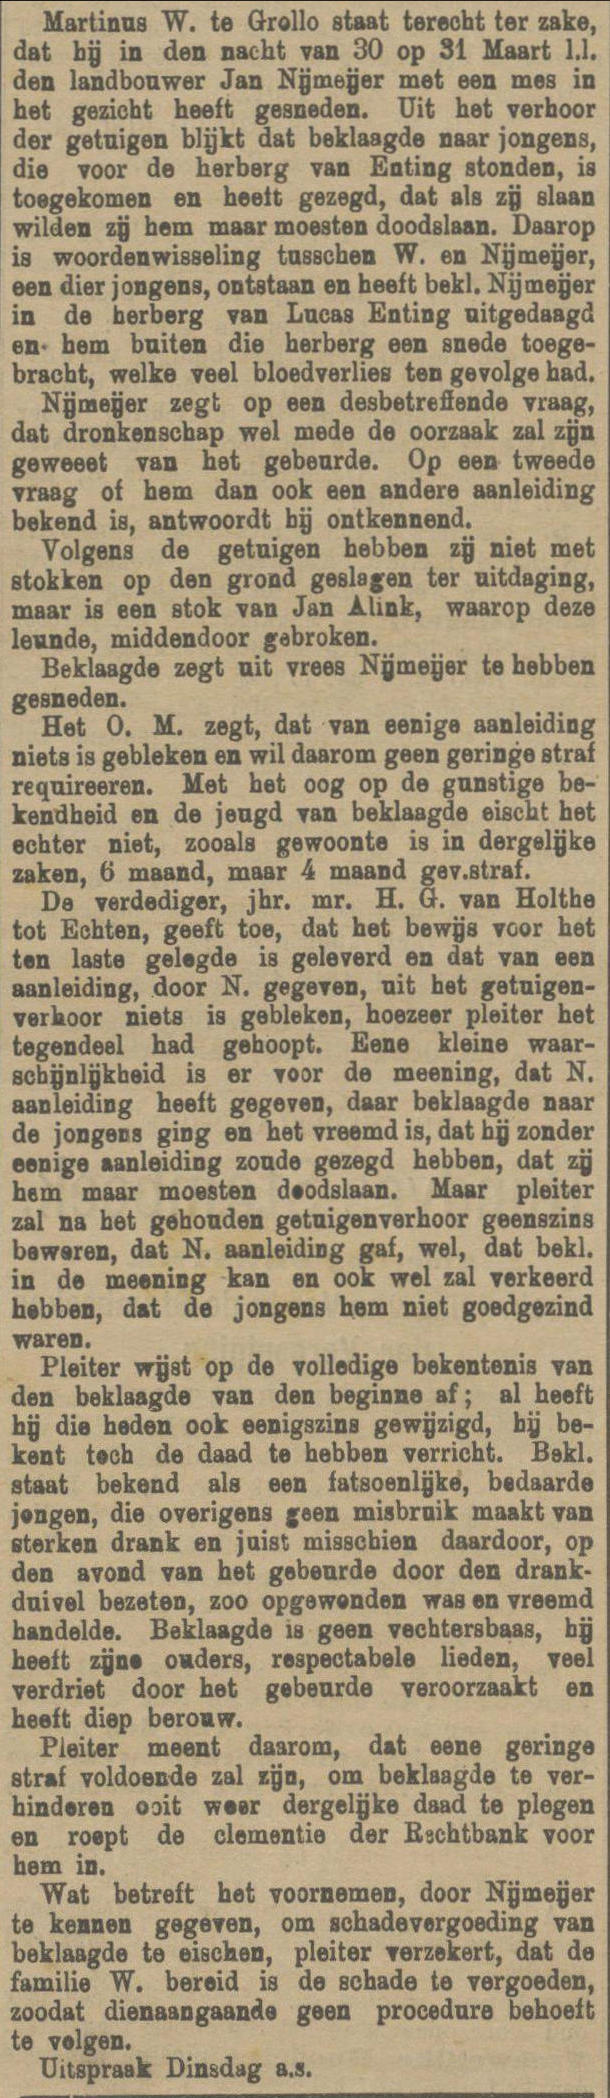 18910423 krant PDAC vechtpartij cafe Enting